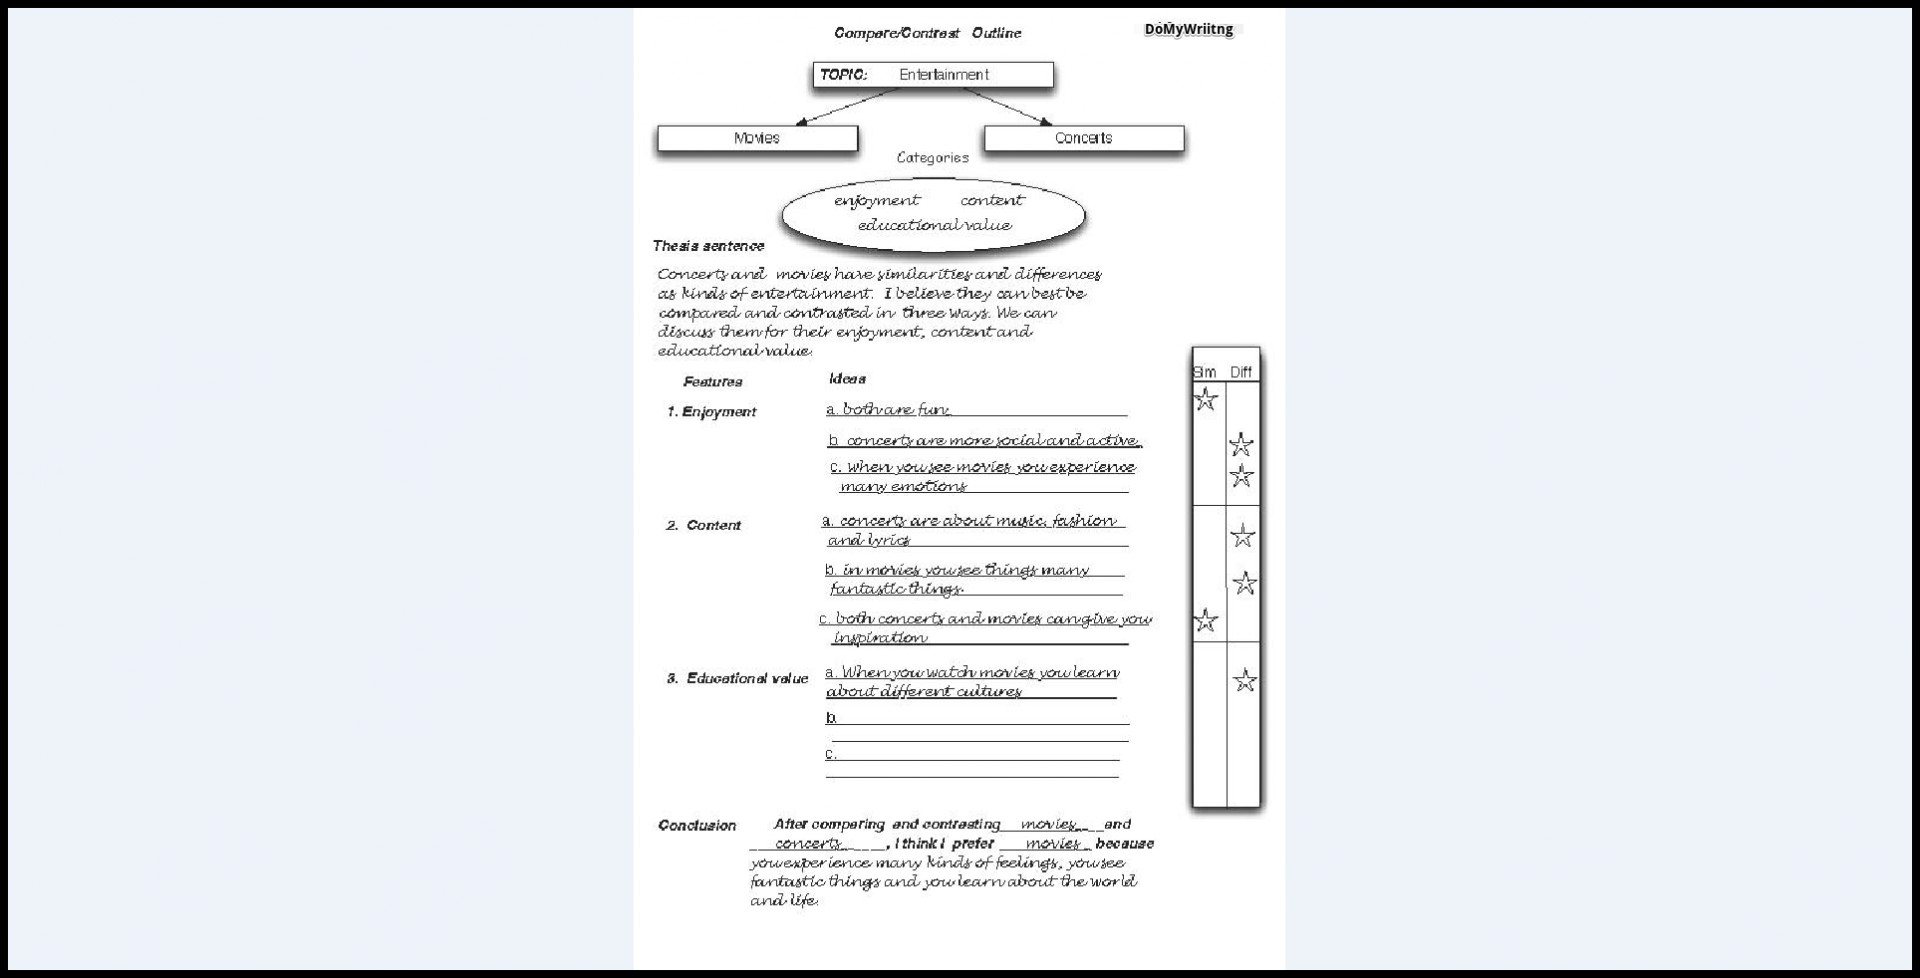 017 Compare And Contrast Essay Structure Stupendous Ppt Format Outline 1920